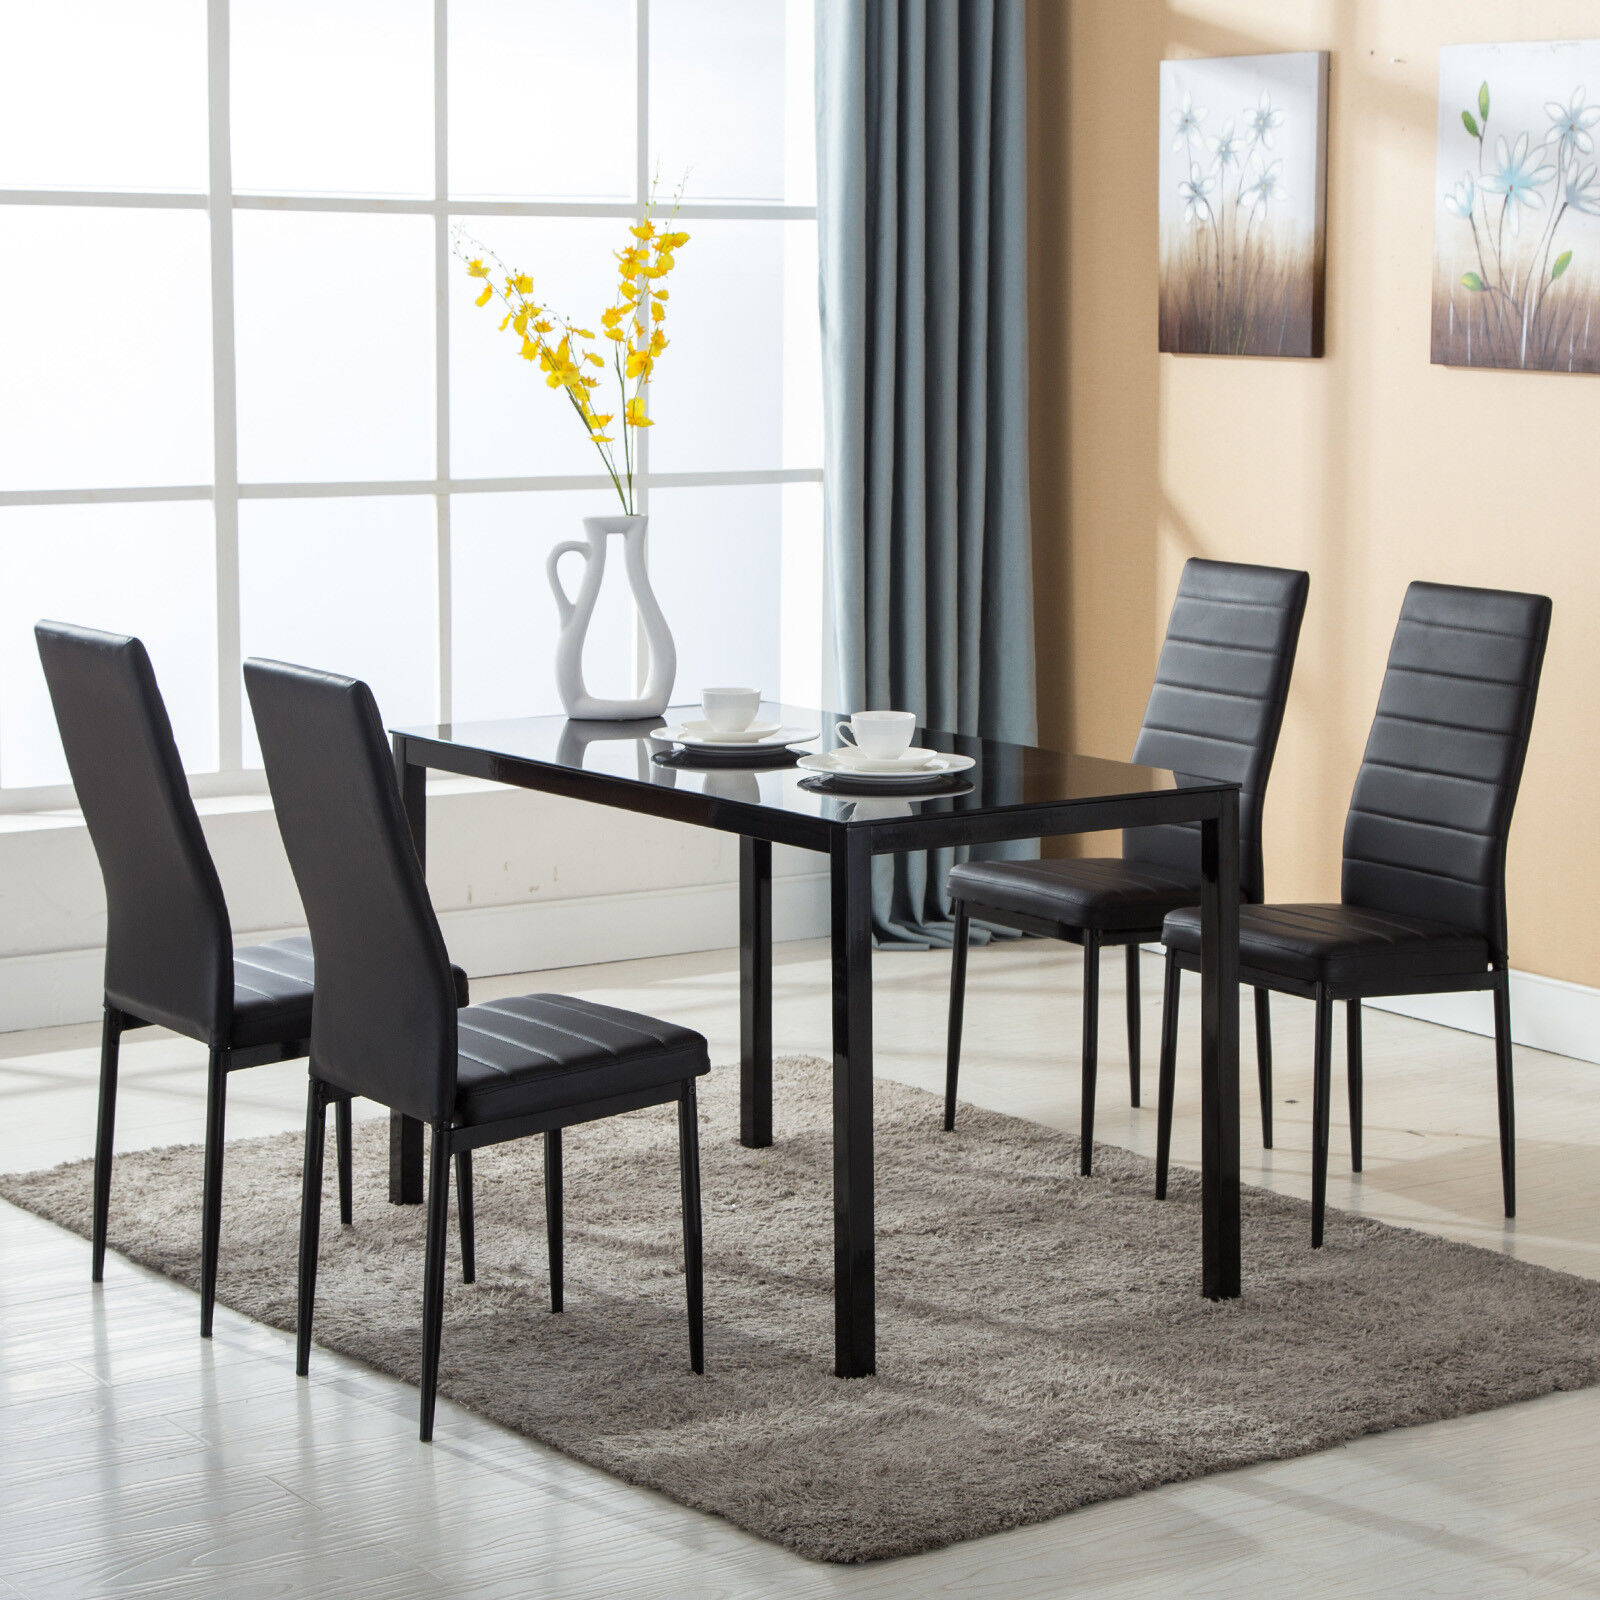 Dining Room Chairs Set Of 4 Details About 5 Piece Dining Table Set 4 Chairs Glass Metal Kitchen Room Breakfast Furniture